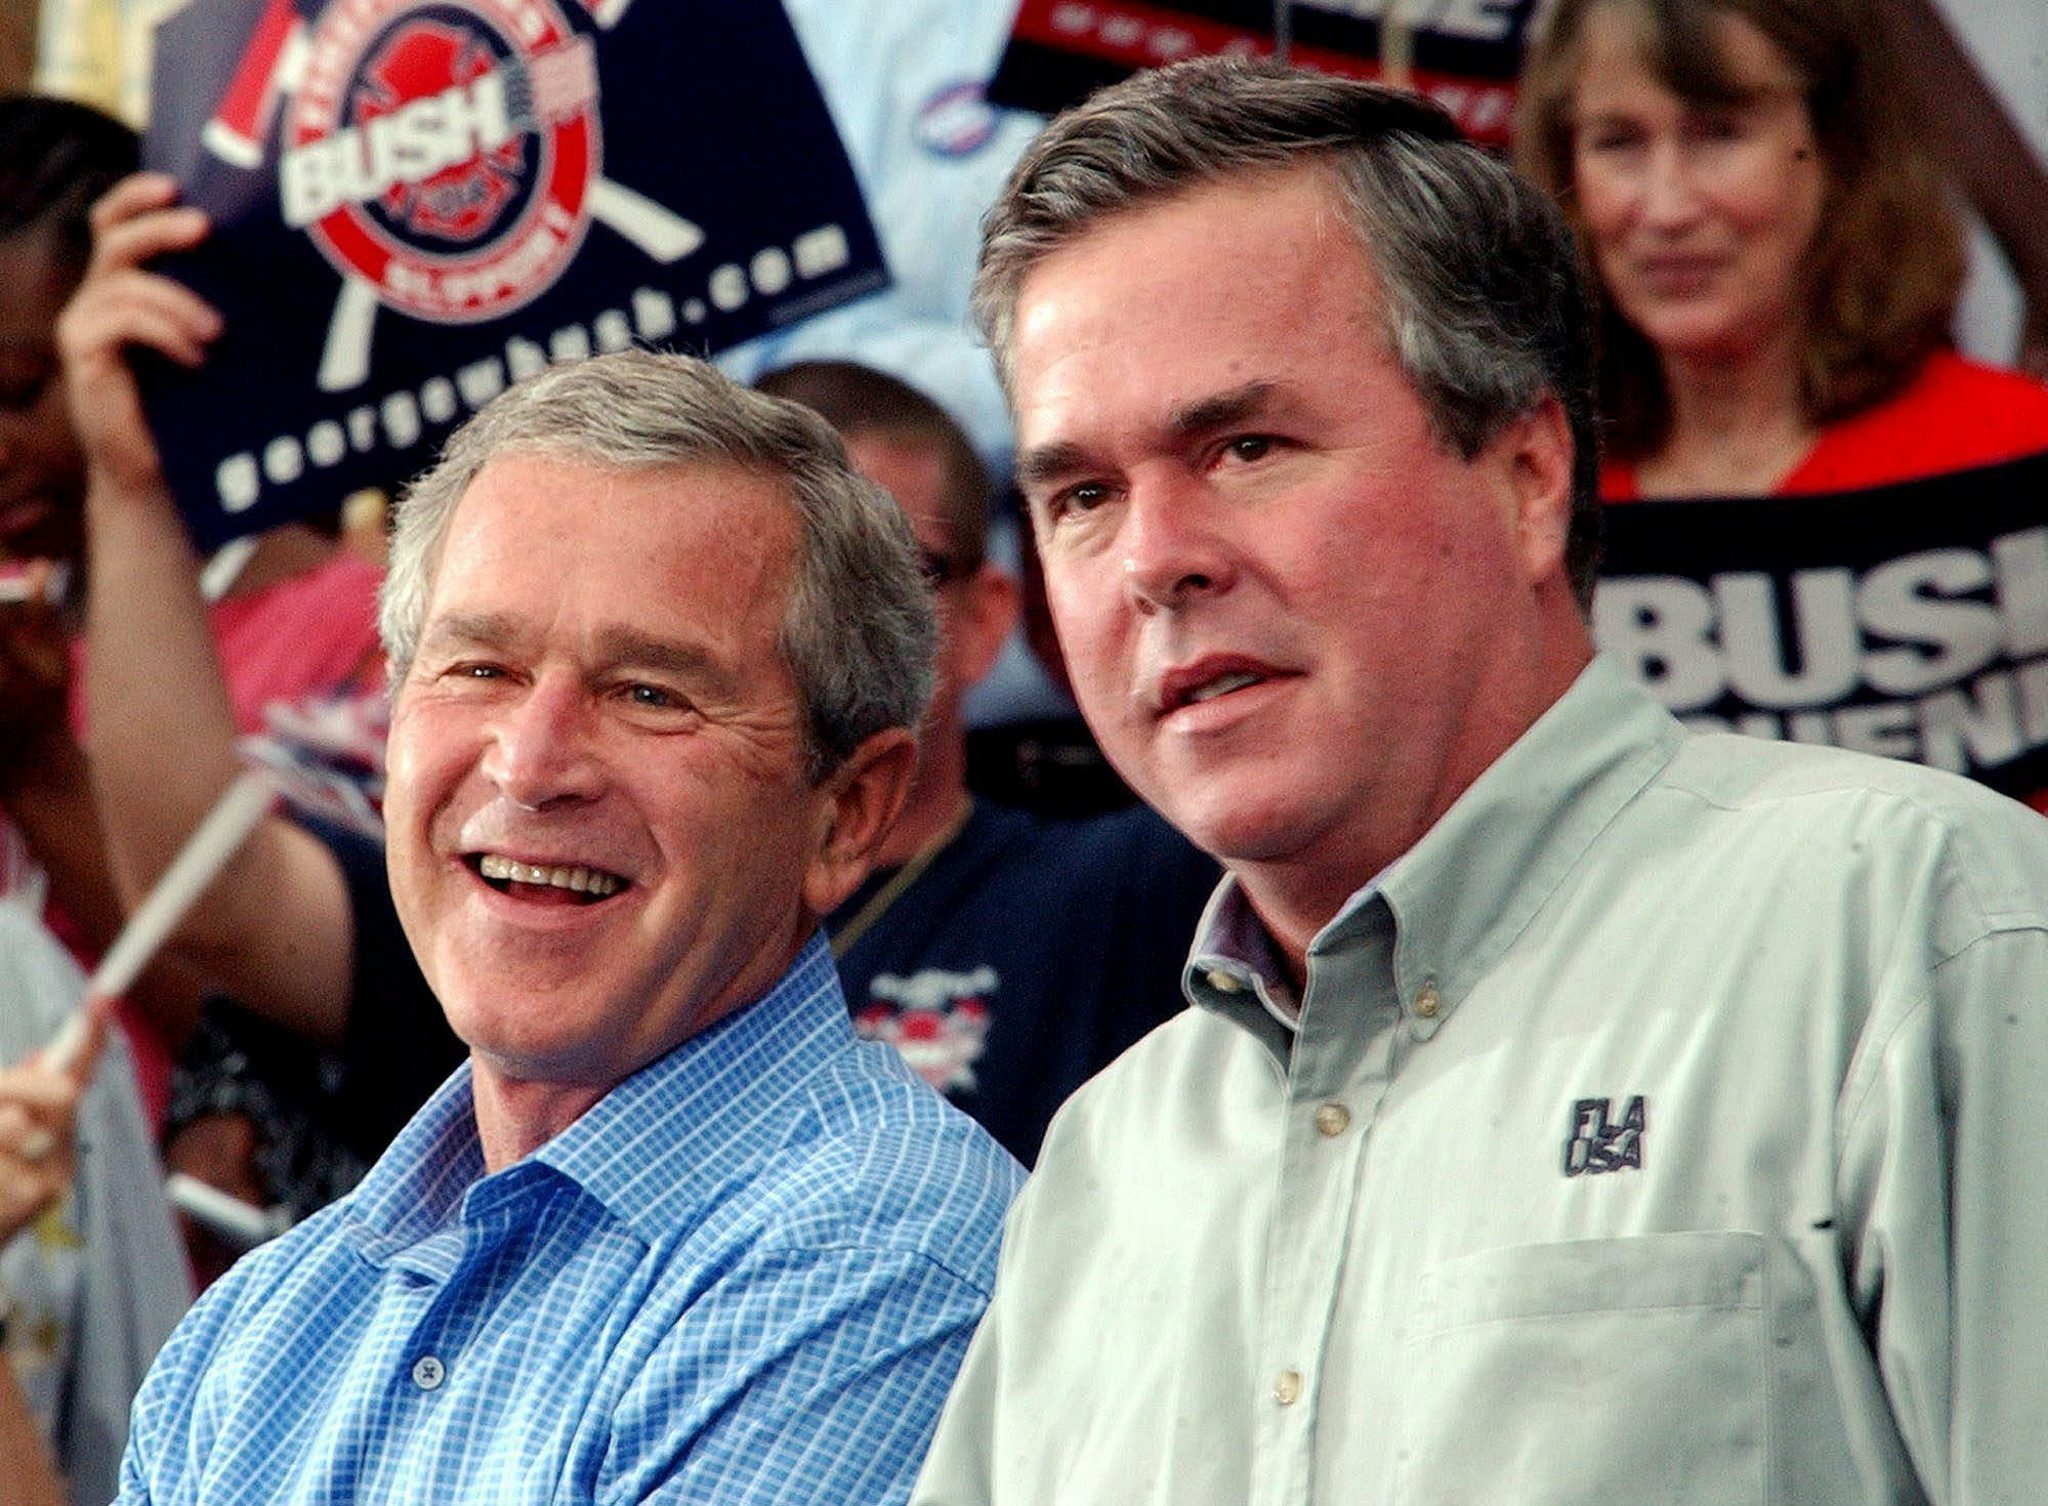 Bush brothers have a complex relationship, marked by ...